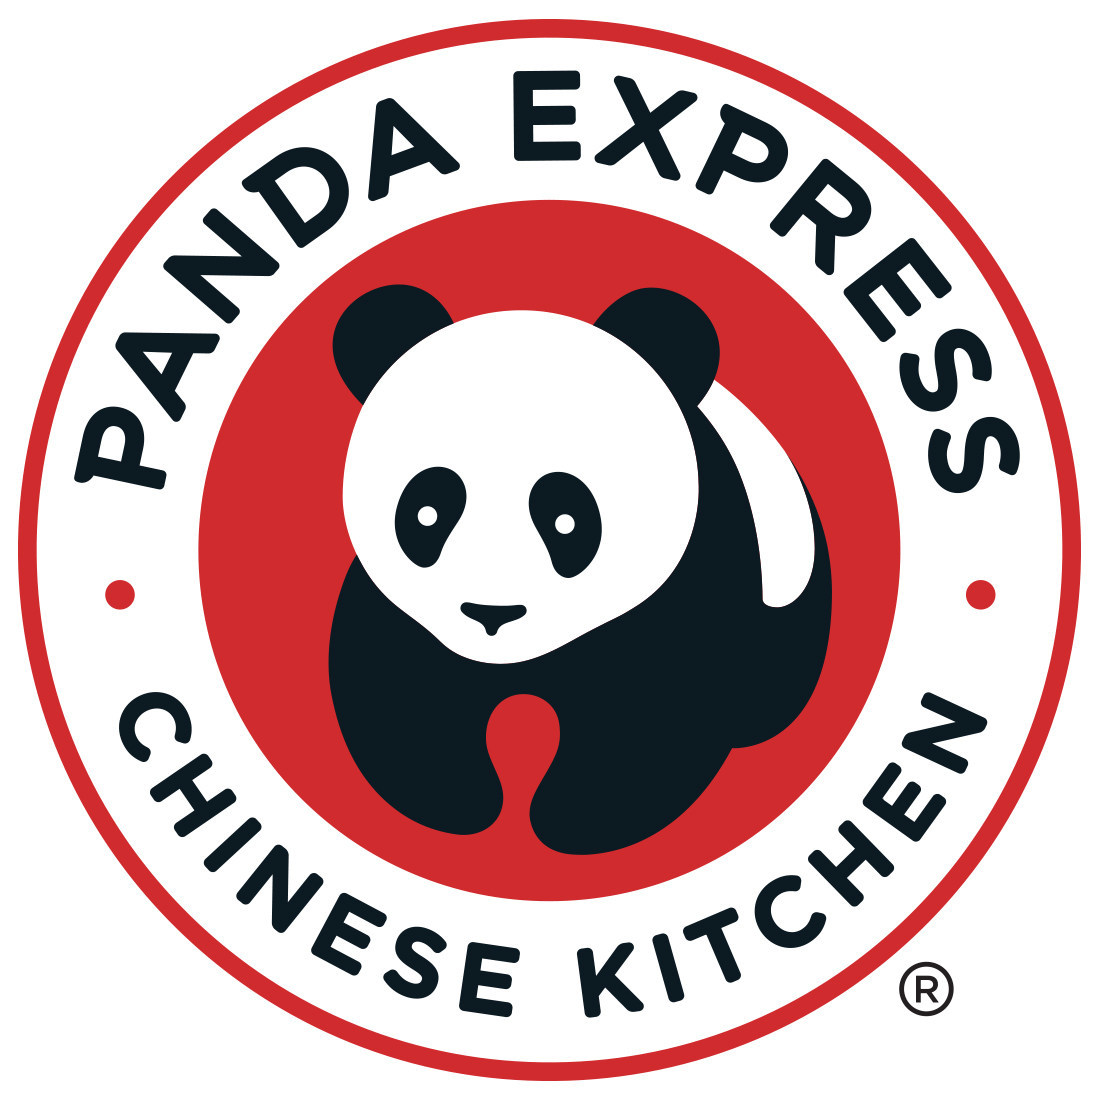 panda express dating policy Find the best panda express coupons review our privacy policy if you love panda express, you should check out these stores as well chipotle coupons: 5 coupons.